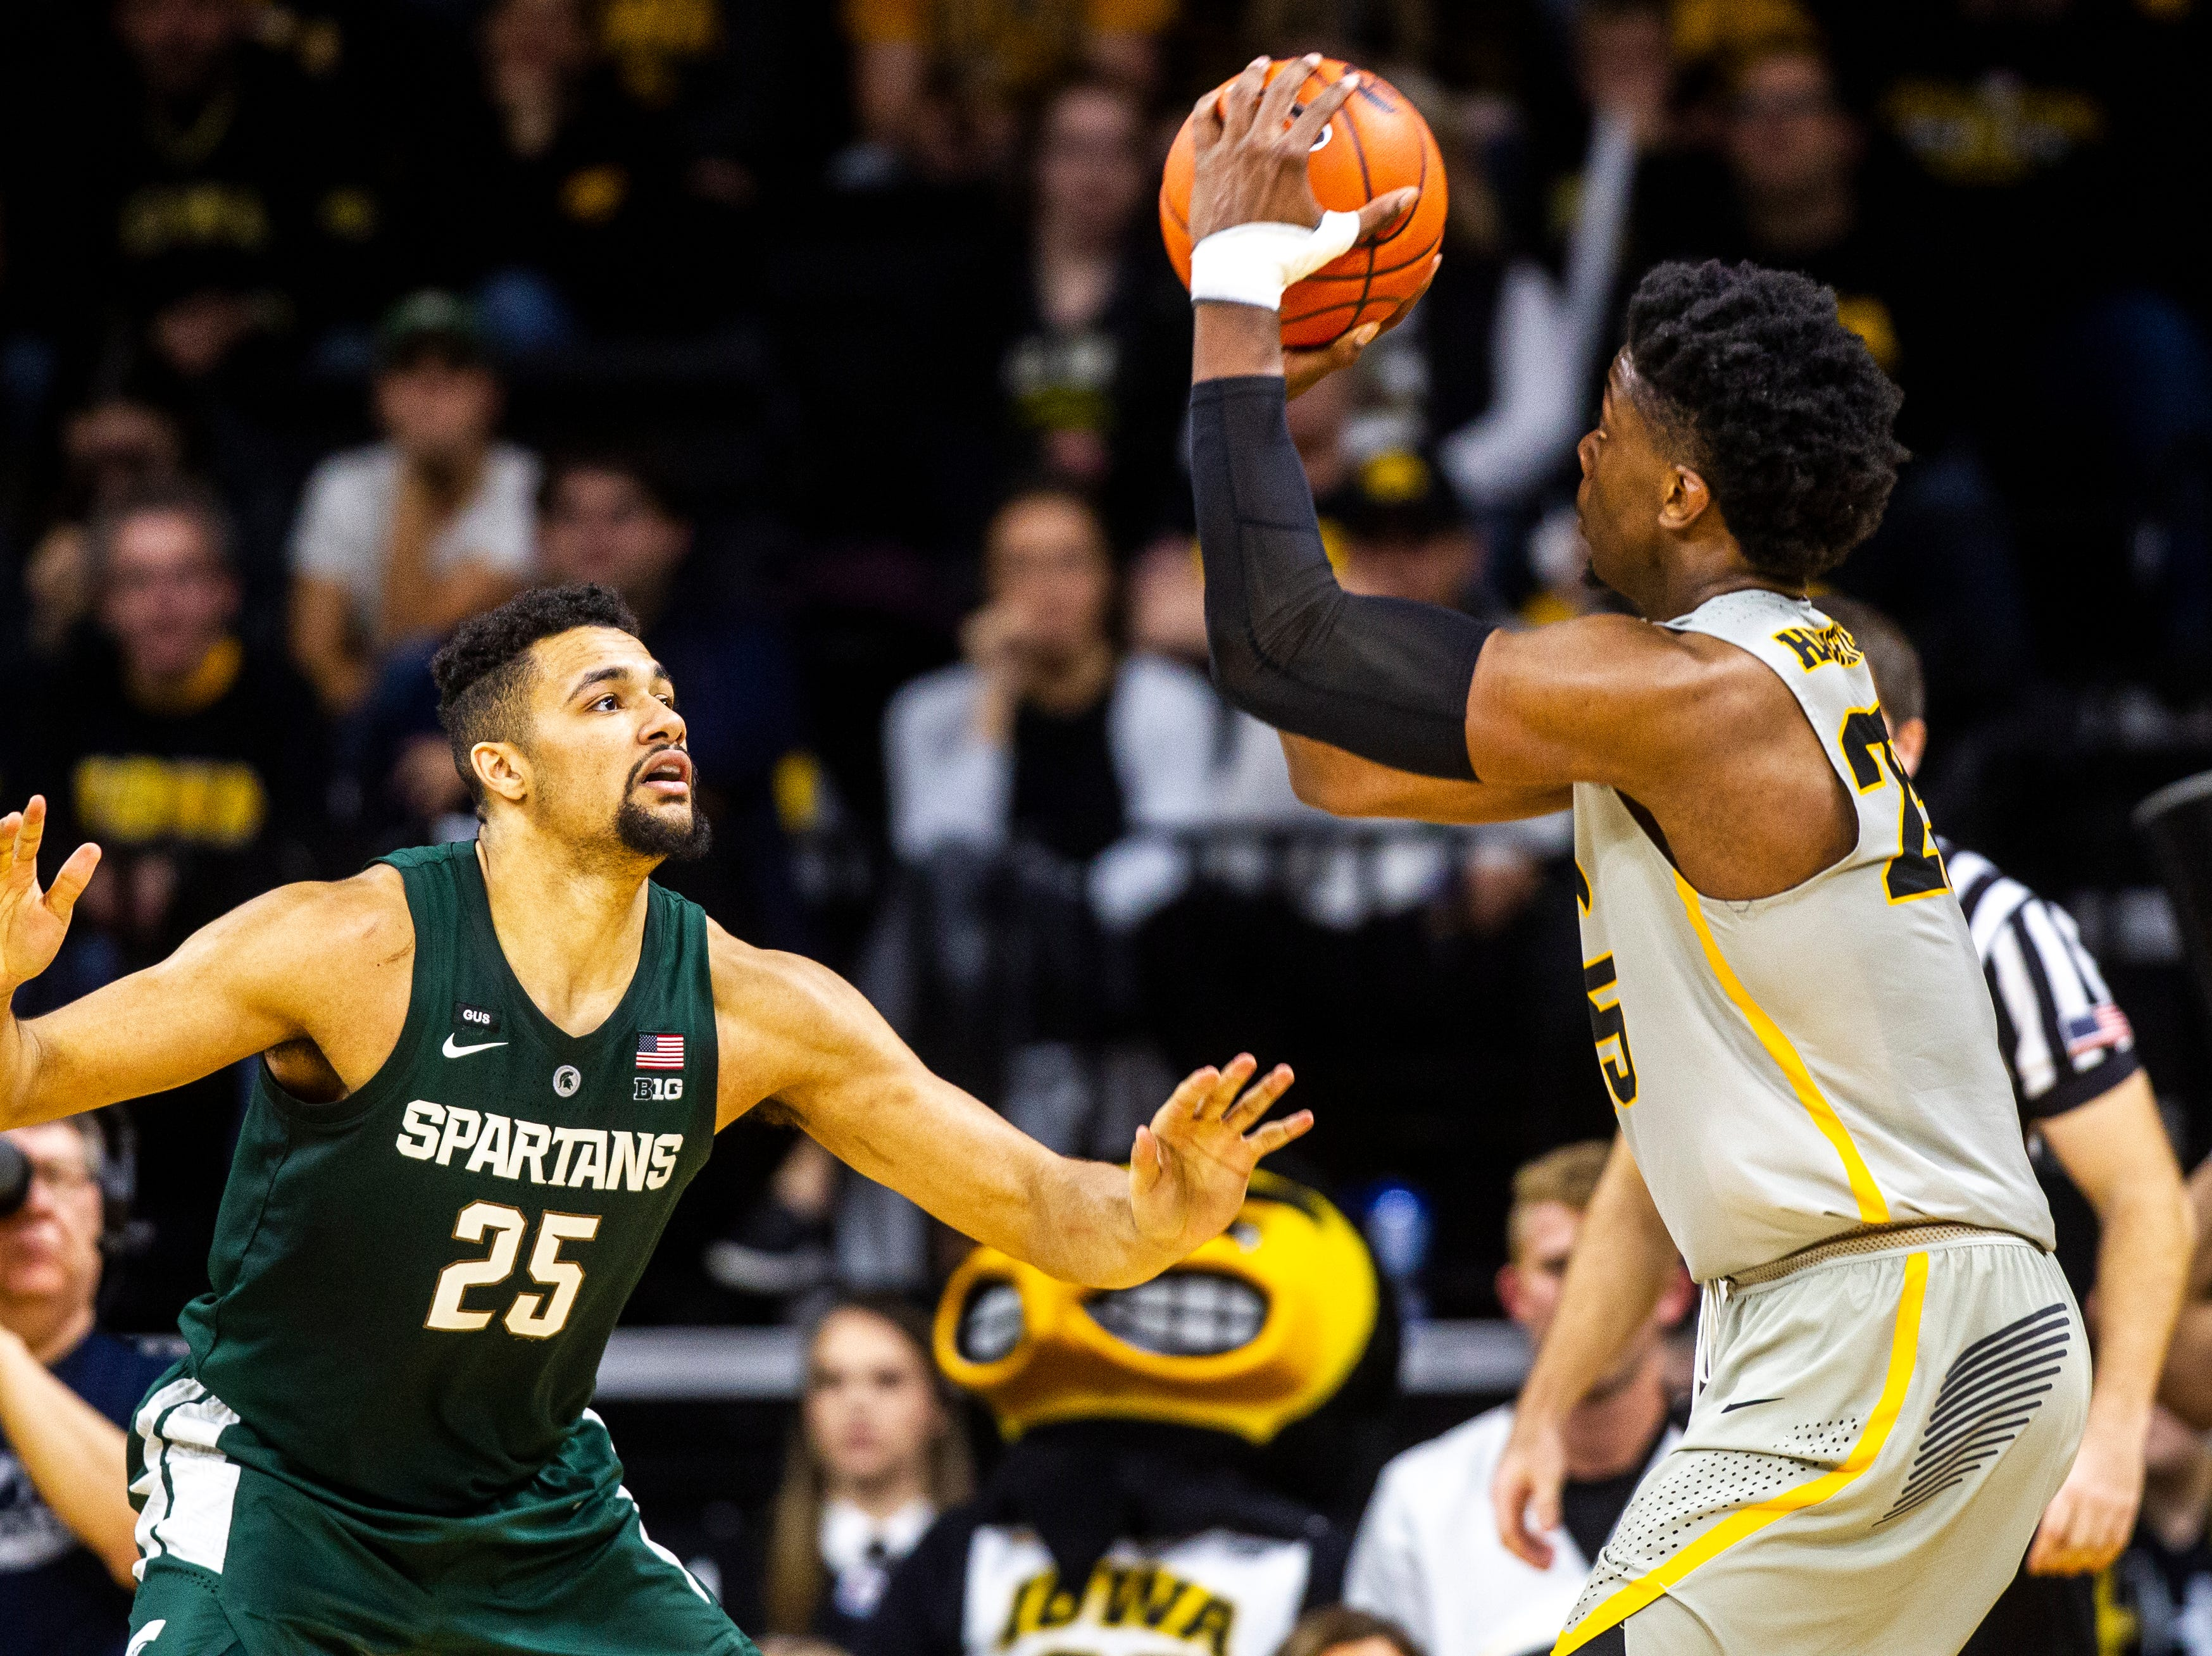 Iowa forward Tyler Cook (25) gets defended by Michigan State forward Kenny Goins (25) during a NCAA Big Ten Conference men's basketball game on Thursday, Jan. 24, 2019, at Carver-Hawkeye Arena in Iowa City, Iowa.